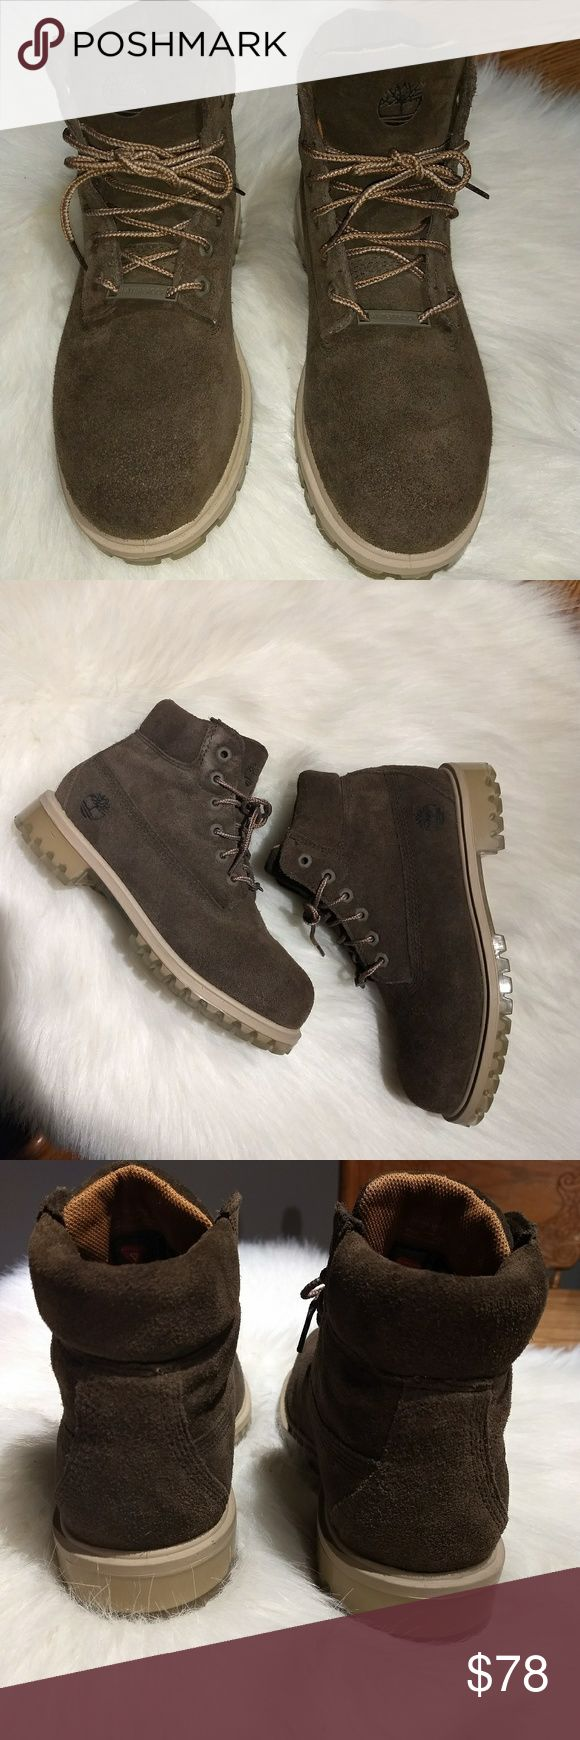 NWOT//Boy's Timberland Waterproof Boots NWOT  Boy's Timberland Waterproof Boots Suede material Olive Green/Tan in color Clear Soles Shoe tag says: US Size 3, UK 2.5 I do not have original box  No trades Reasonable offers welcomed 10% off 2+bundles  Please read description, see all pics and ask questions before purchasing Timberland Shoes Boots